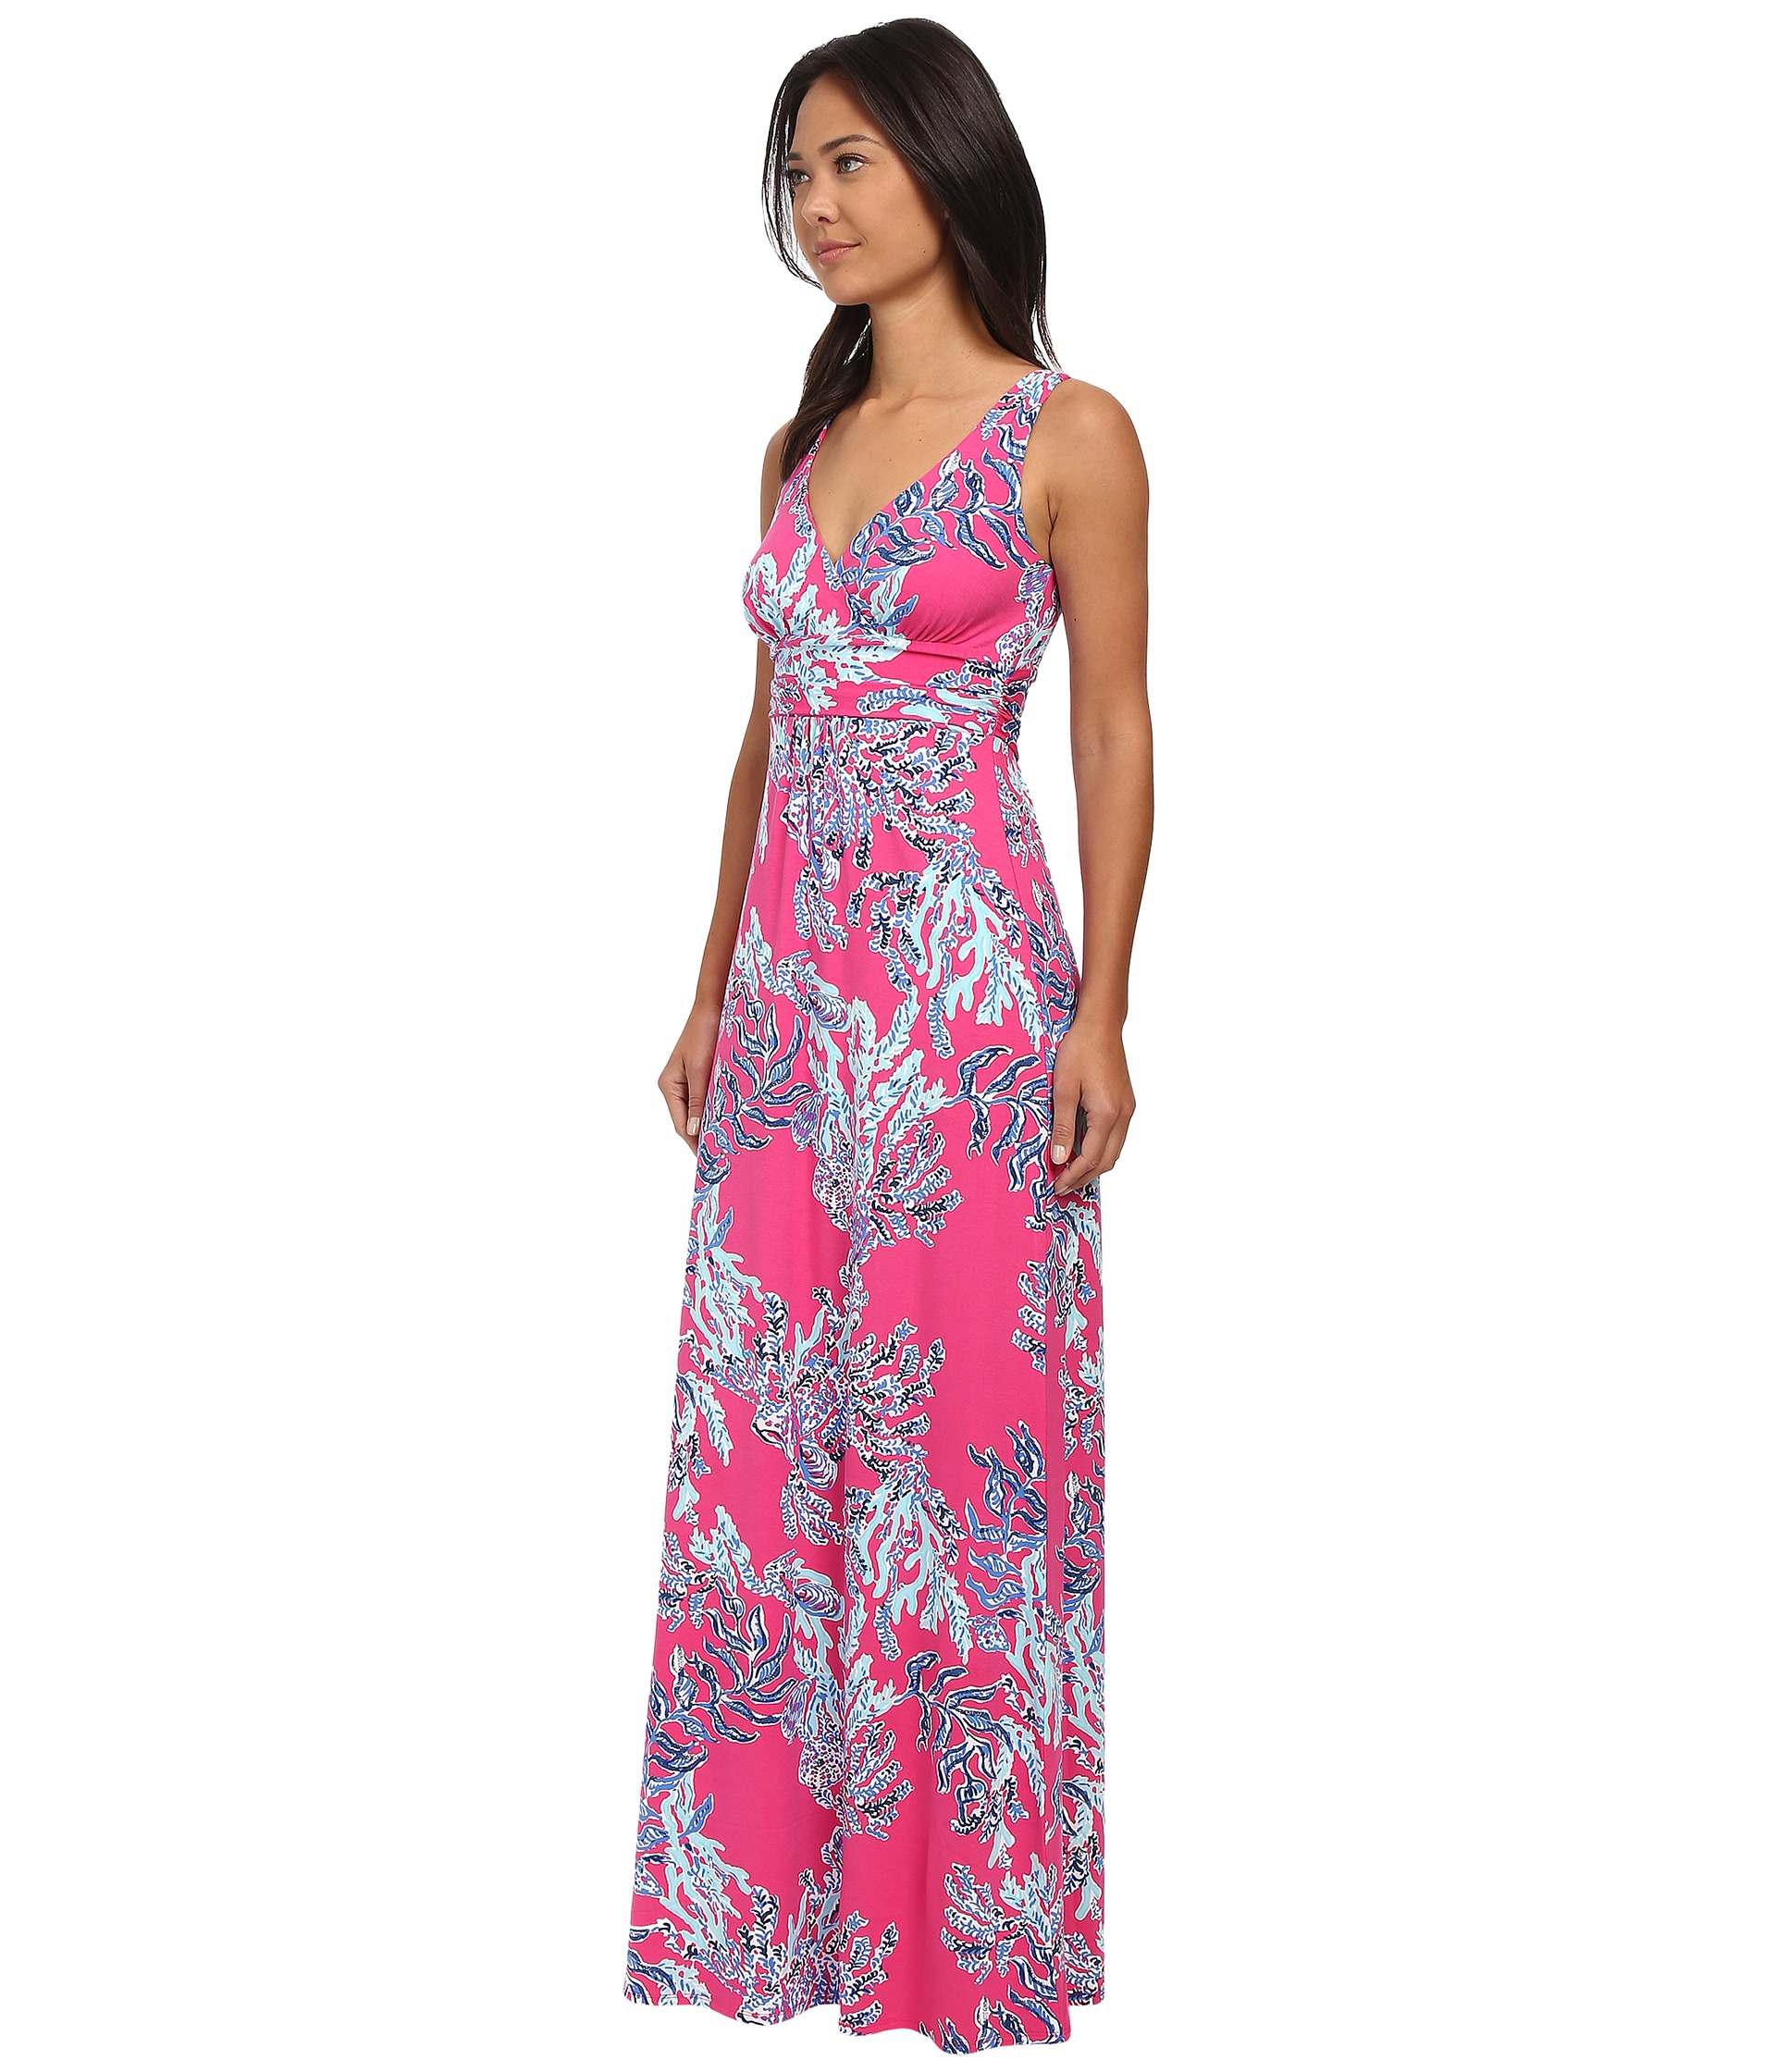 Lyst Lilly Pulitzer Sloane Maxi Dress In Pink